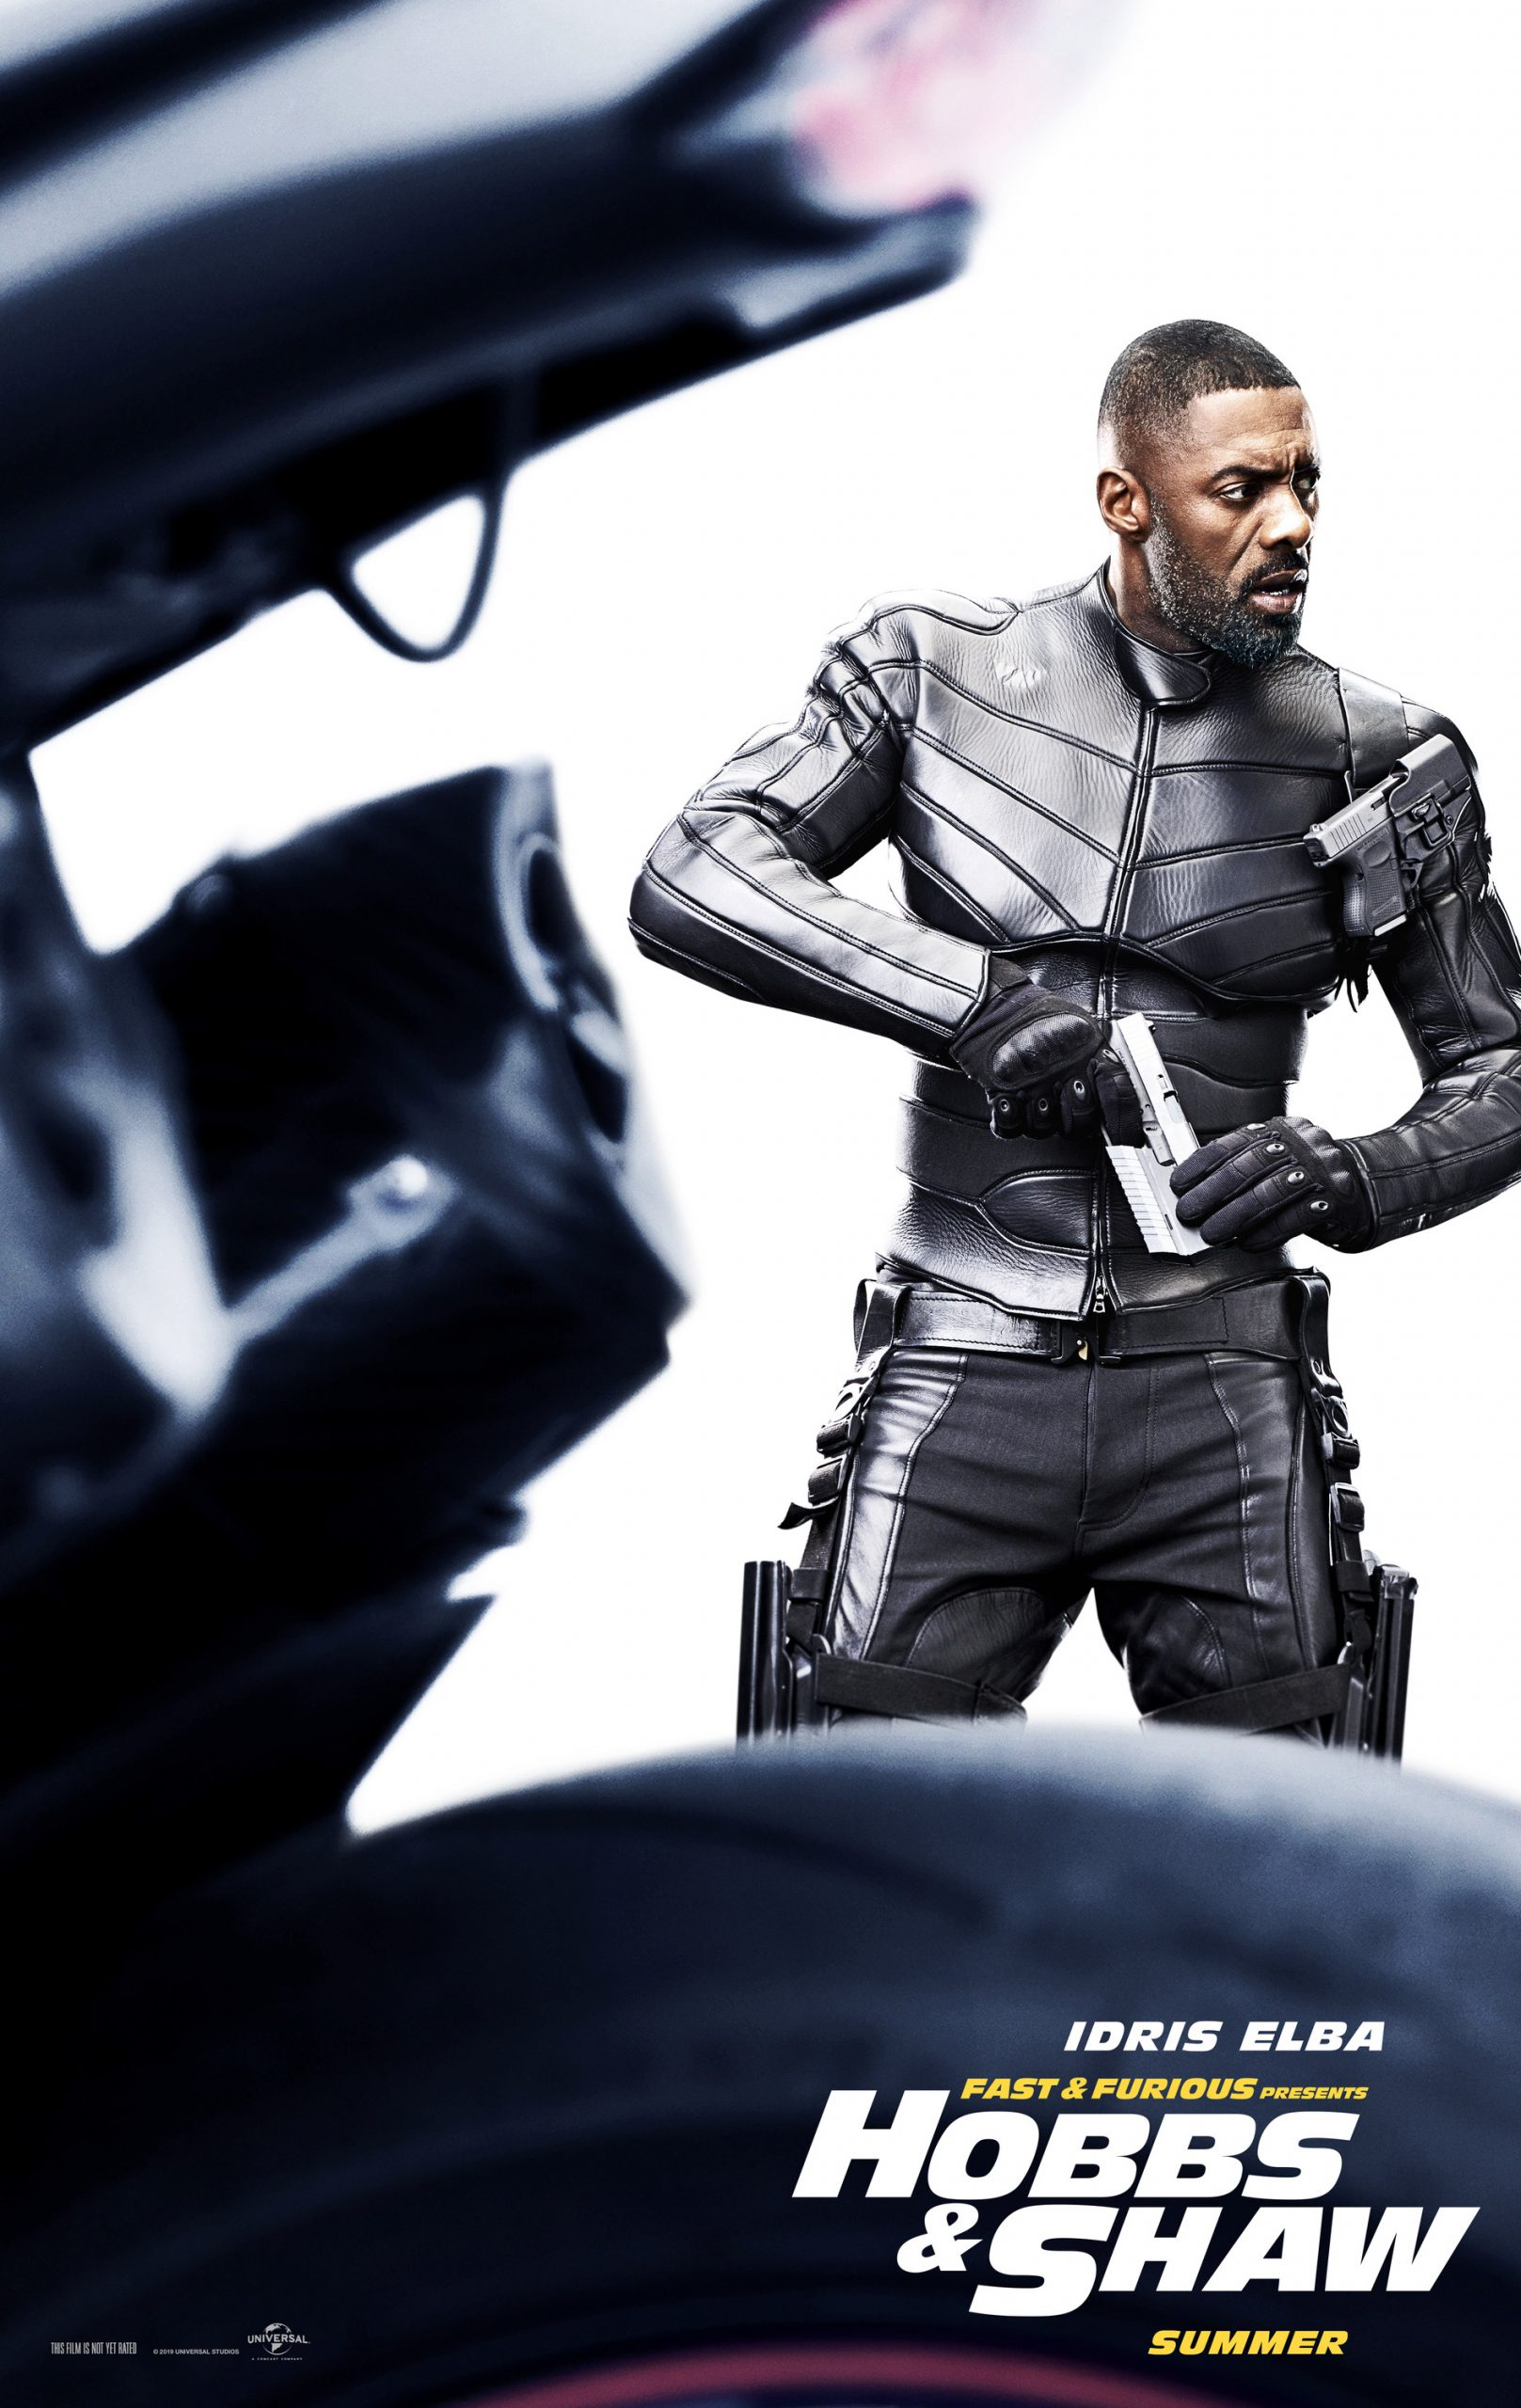 Fast and Furious presents Hobbs and Shaw Character Posters Idris Elba as Brixton Lore